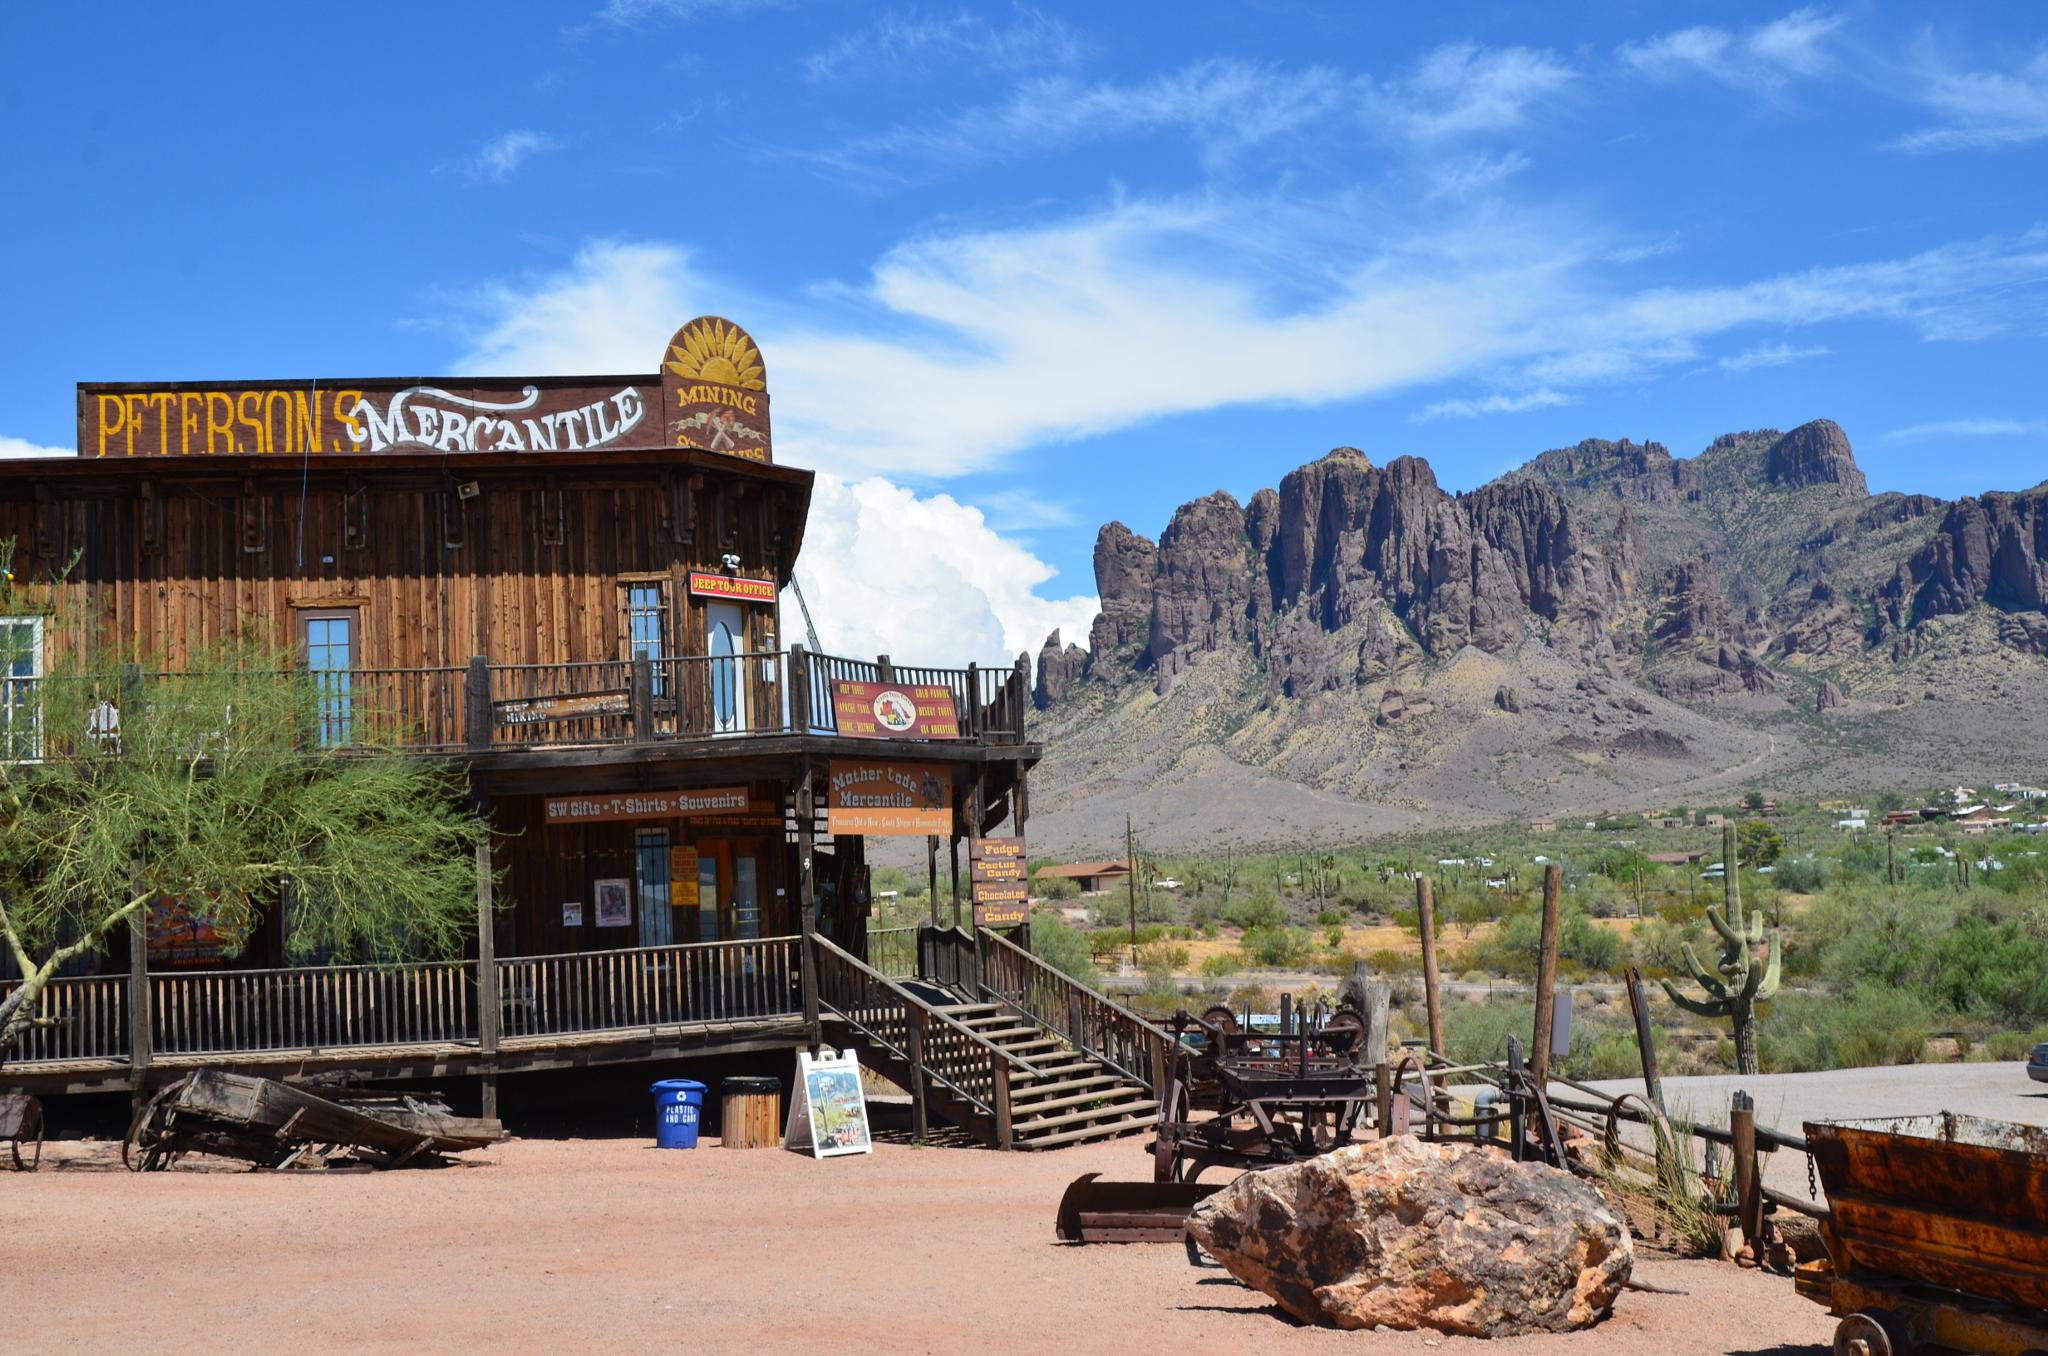 Ghost Town in Apache Junction, AZ by djy